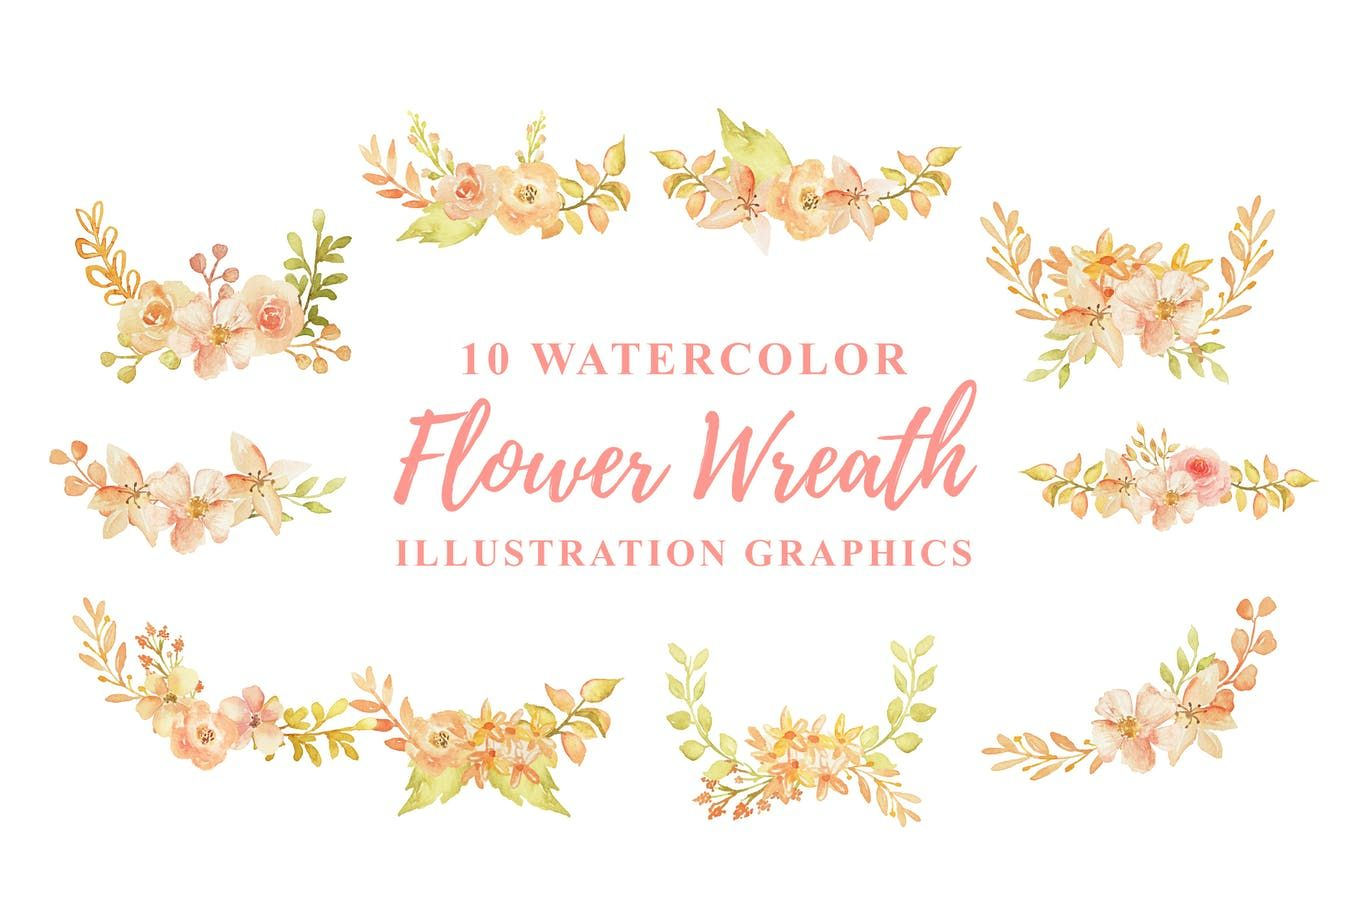 Photo of 10 watercolor floral wreath illustration graphics